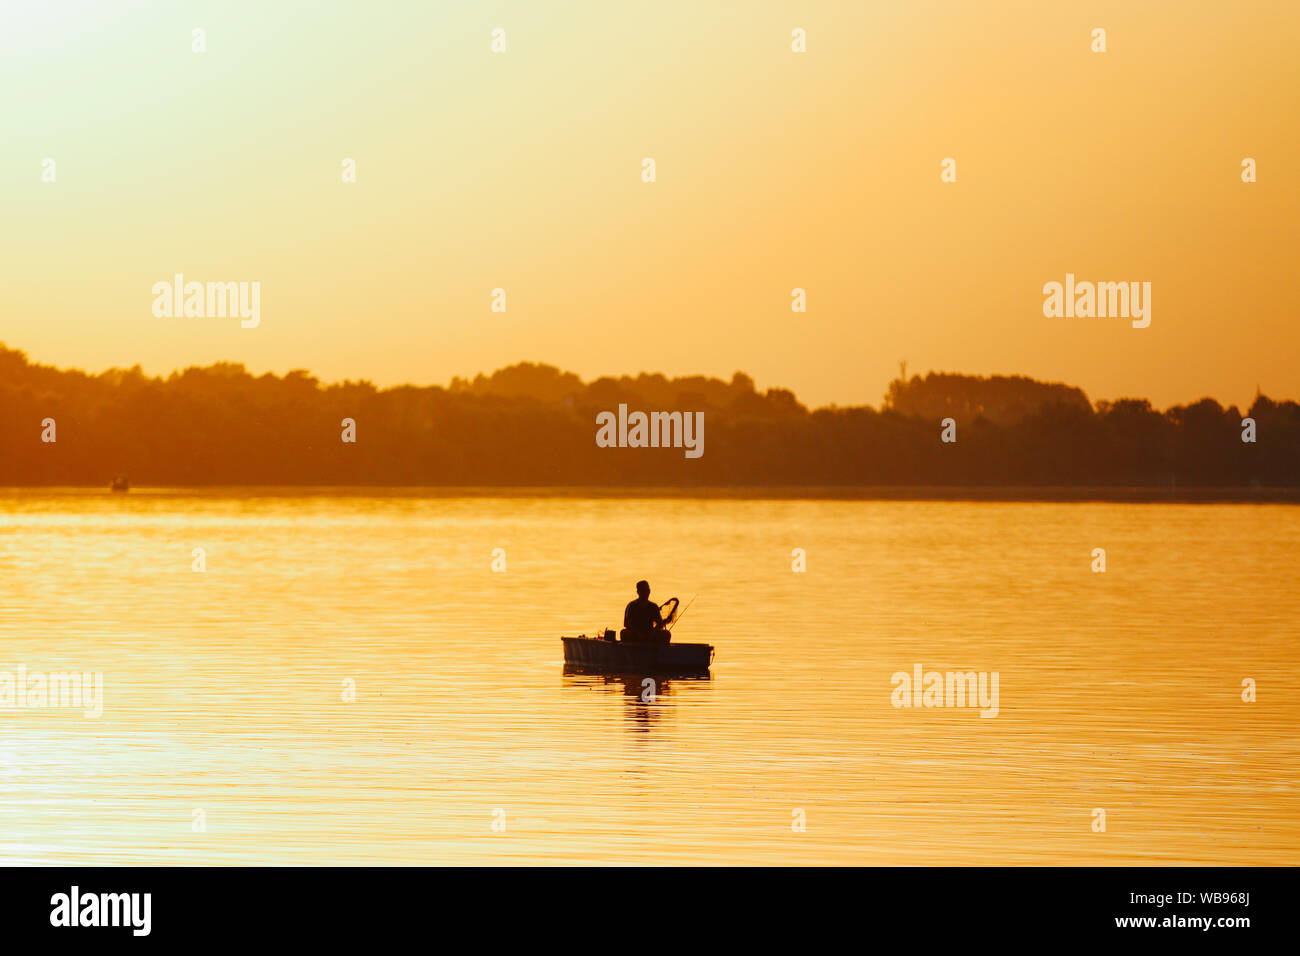 Id Check Stock Photos & Id Check Stock Images - Alamy